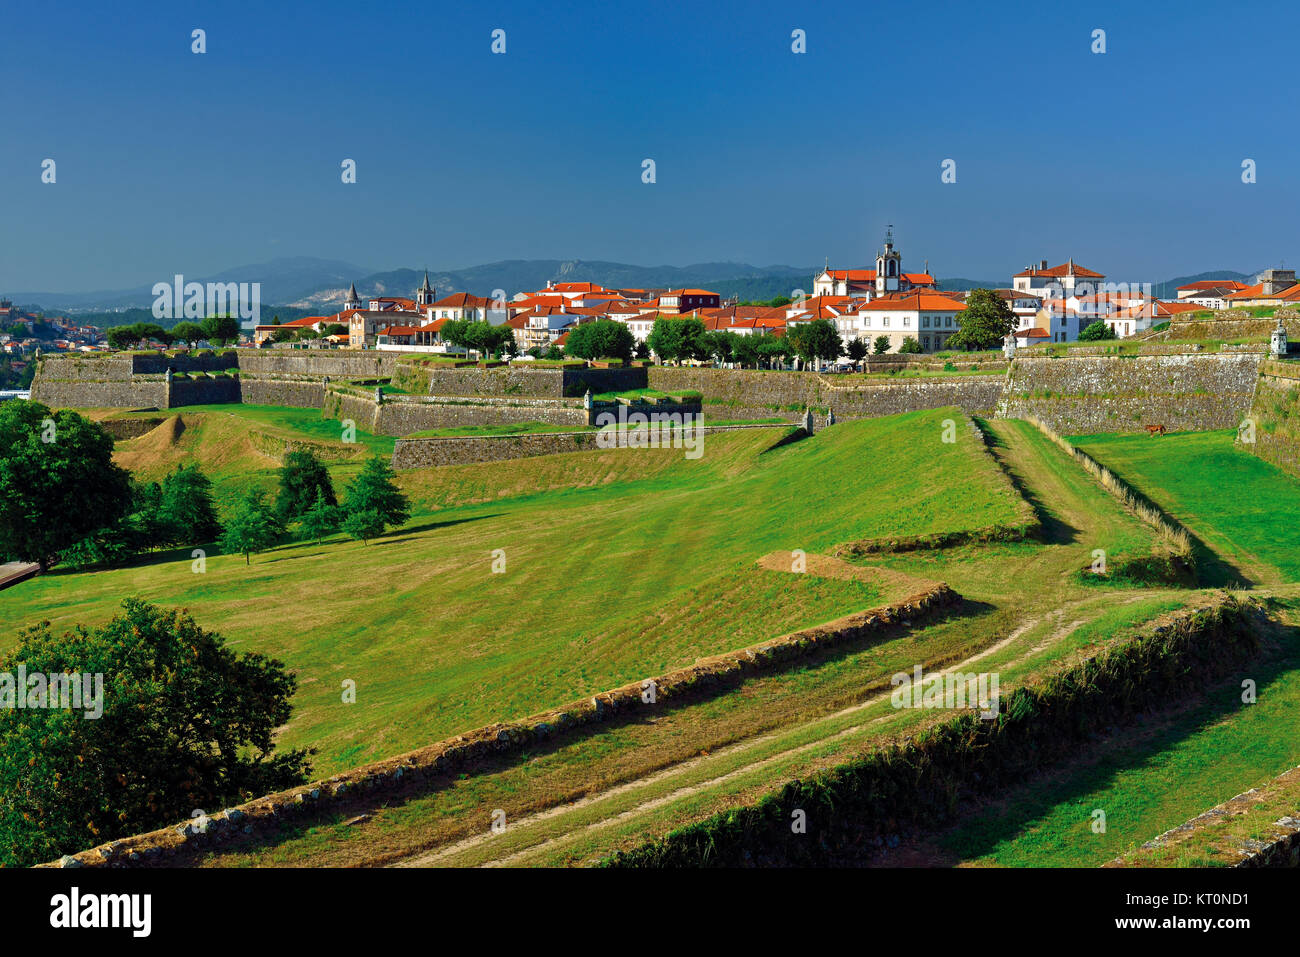 Medieval town walls  and surroundings of fortified Eurocity Valenca do Minho in Portugal - Stock Image